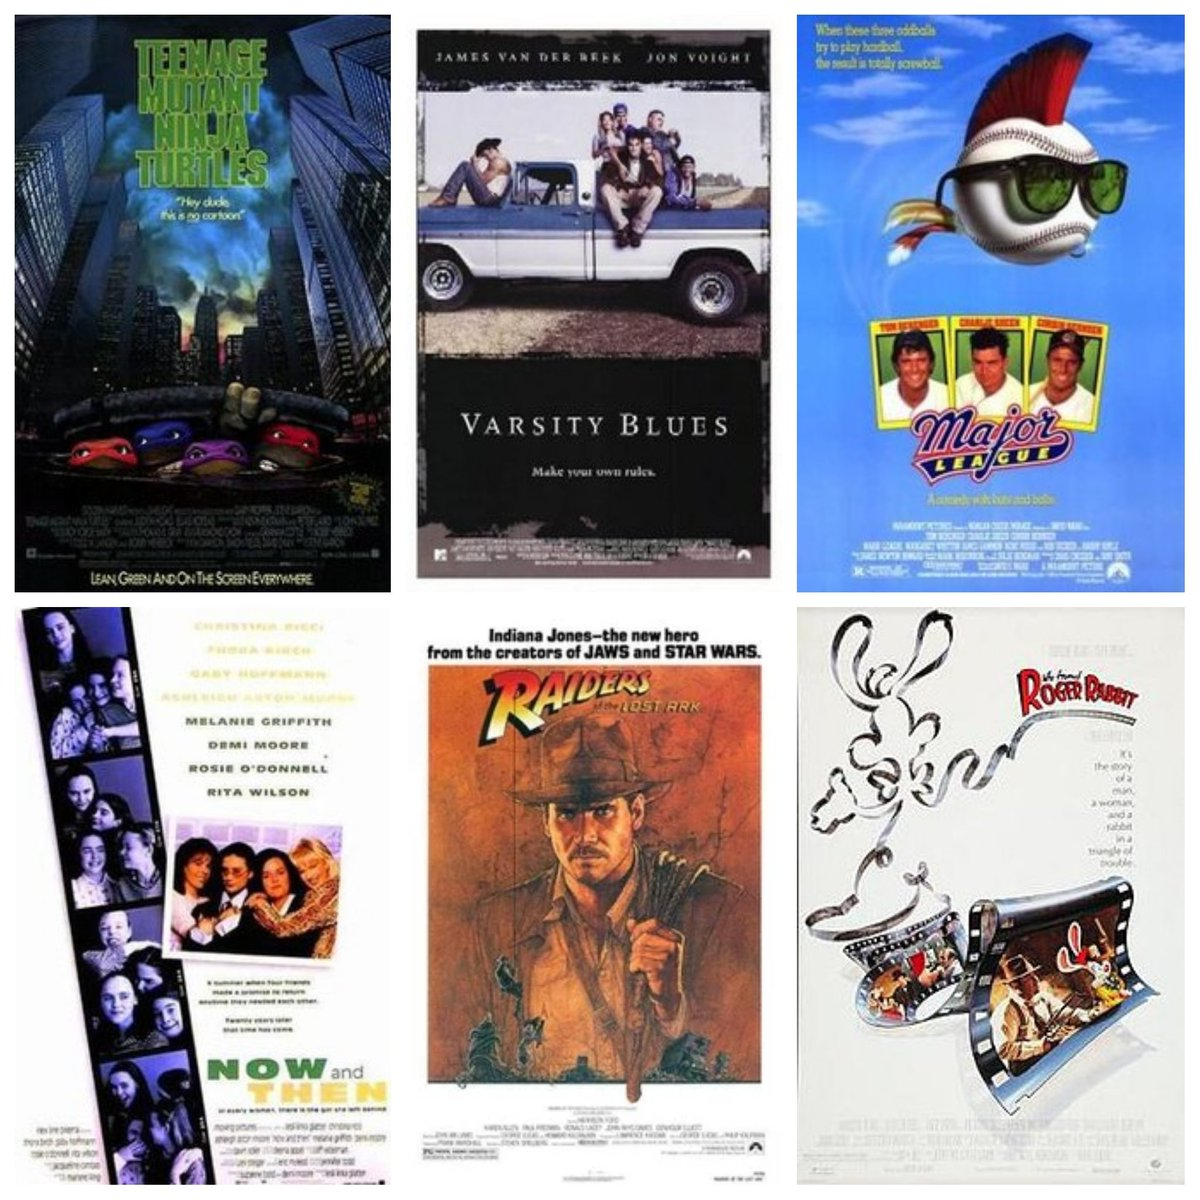 Now is a great time to catch up on all of our episodes!  You can listen to Run it Back on all of the podcast apps or at http://runitback.buzzsprout.com   #podcast #80spodcast #90spodcast #moviepodcast #80s #90s #runitbackpodcast #80smovies #90smovies #borninthe80s #raisedinthe90spic.twitter.com/AYkgFidF75